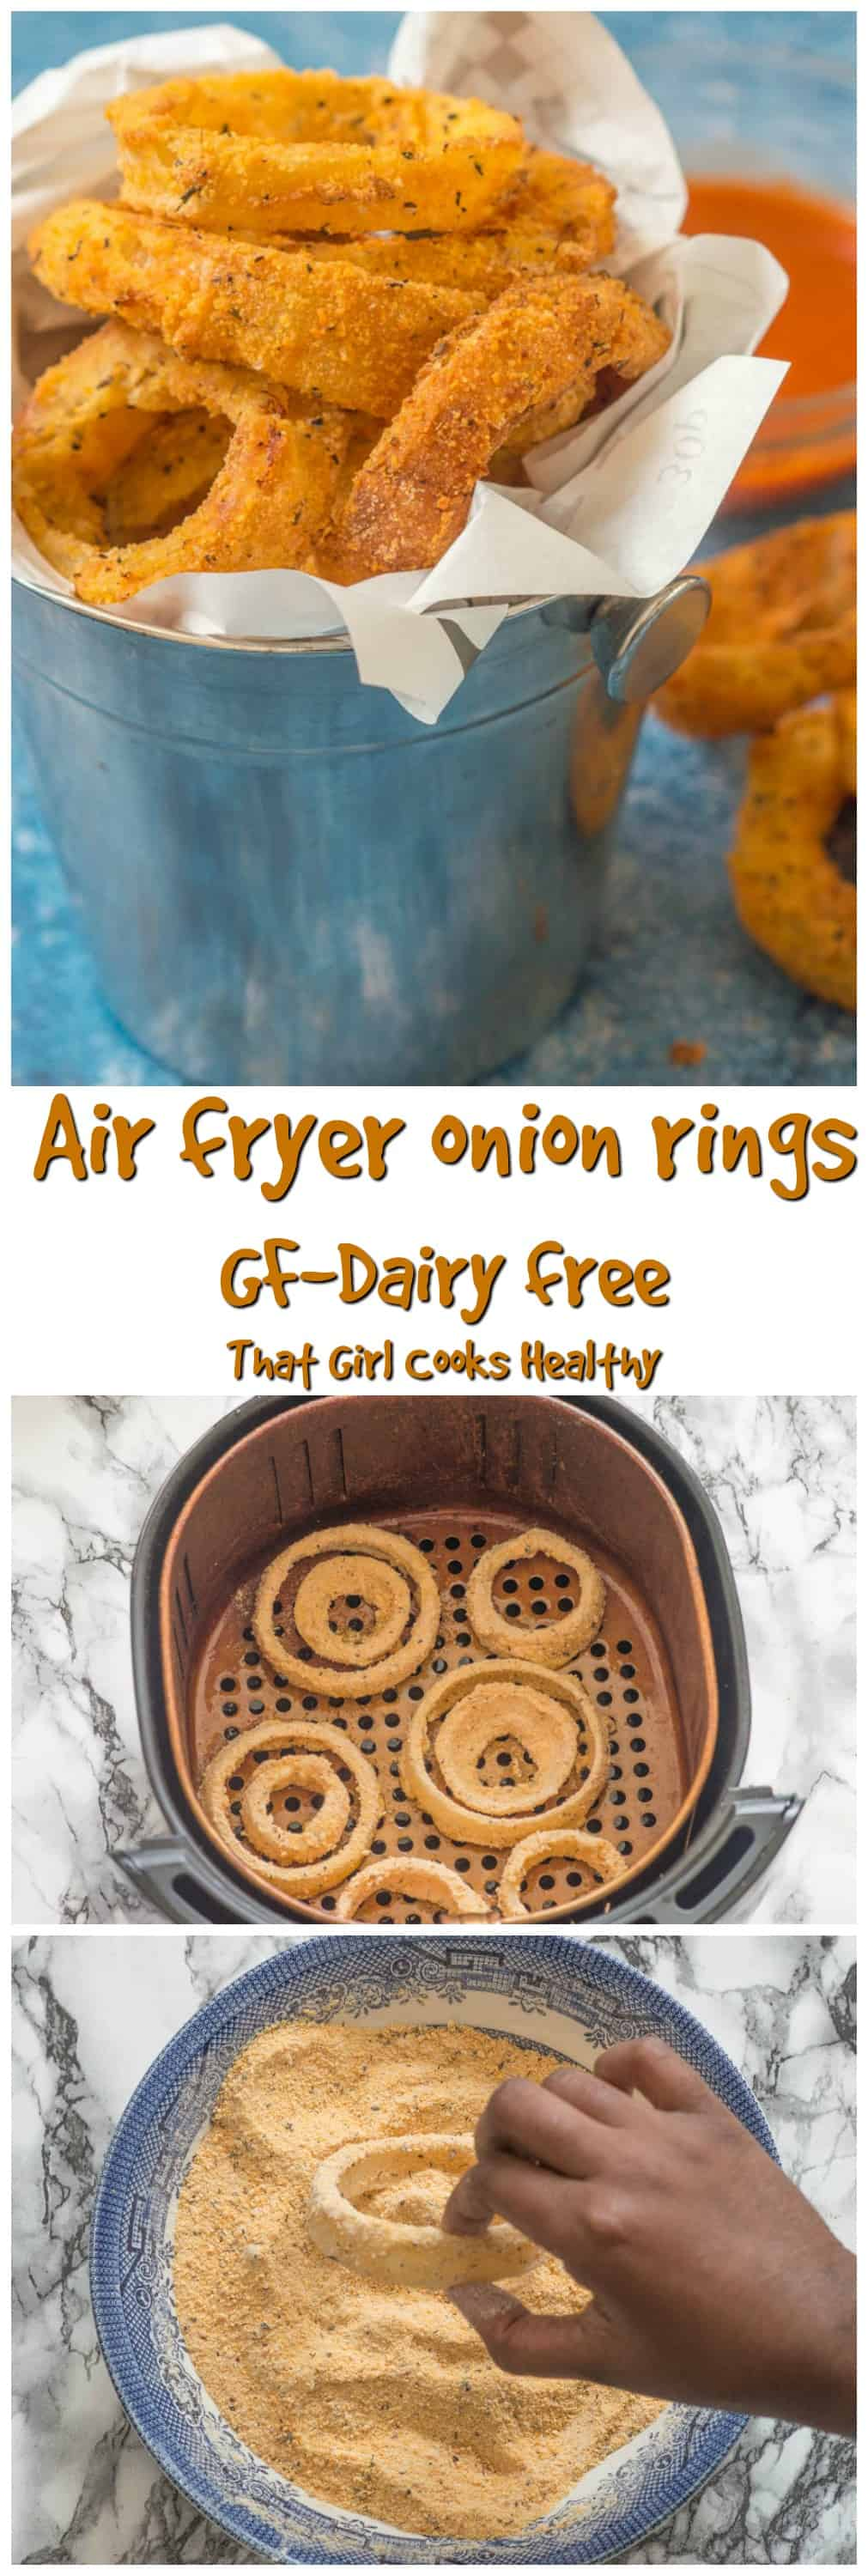 The the crispiest gluten free air fryer onion rings you will ever make